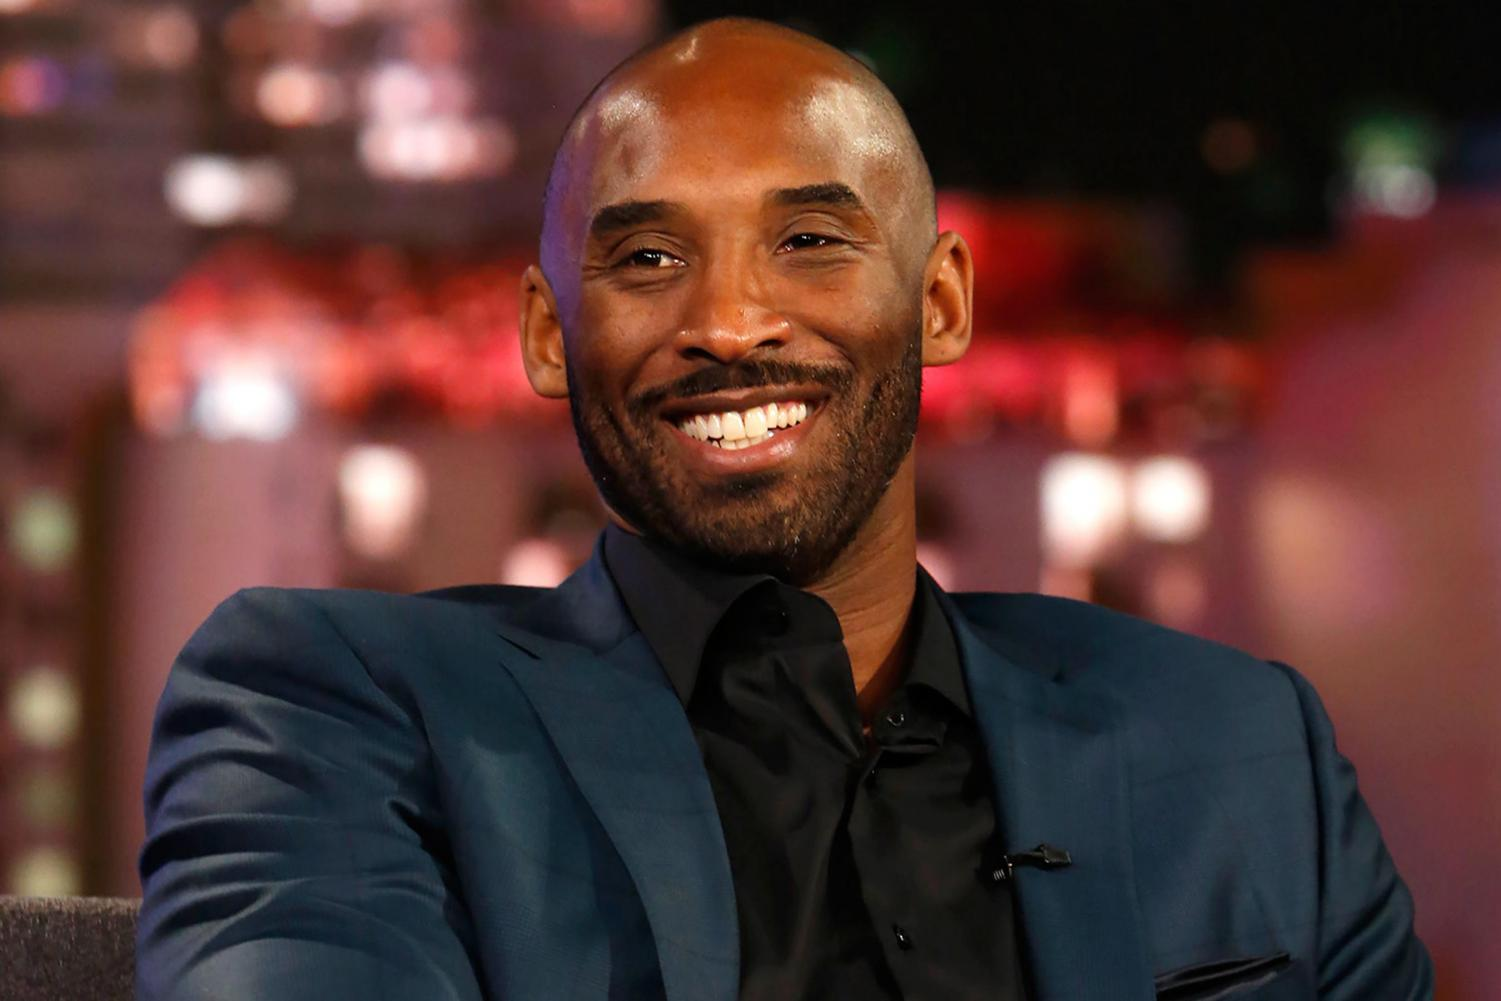 Kobe Bryant has played on Christmas Day more than any other player in NBA history with 16 appearances.